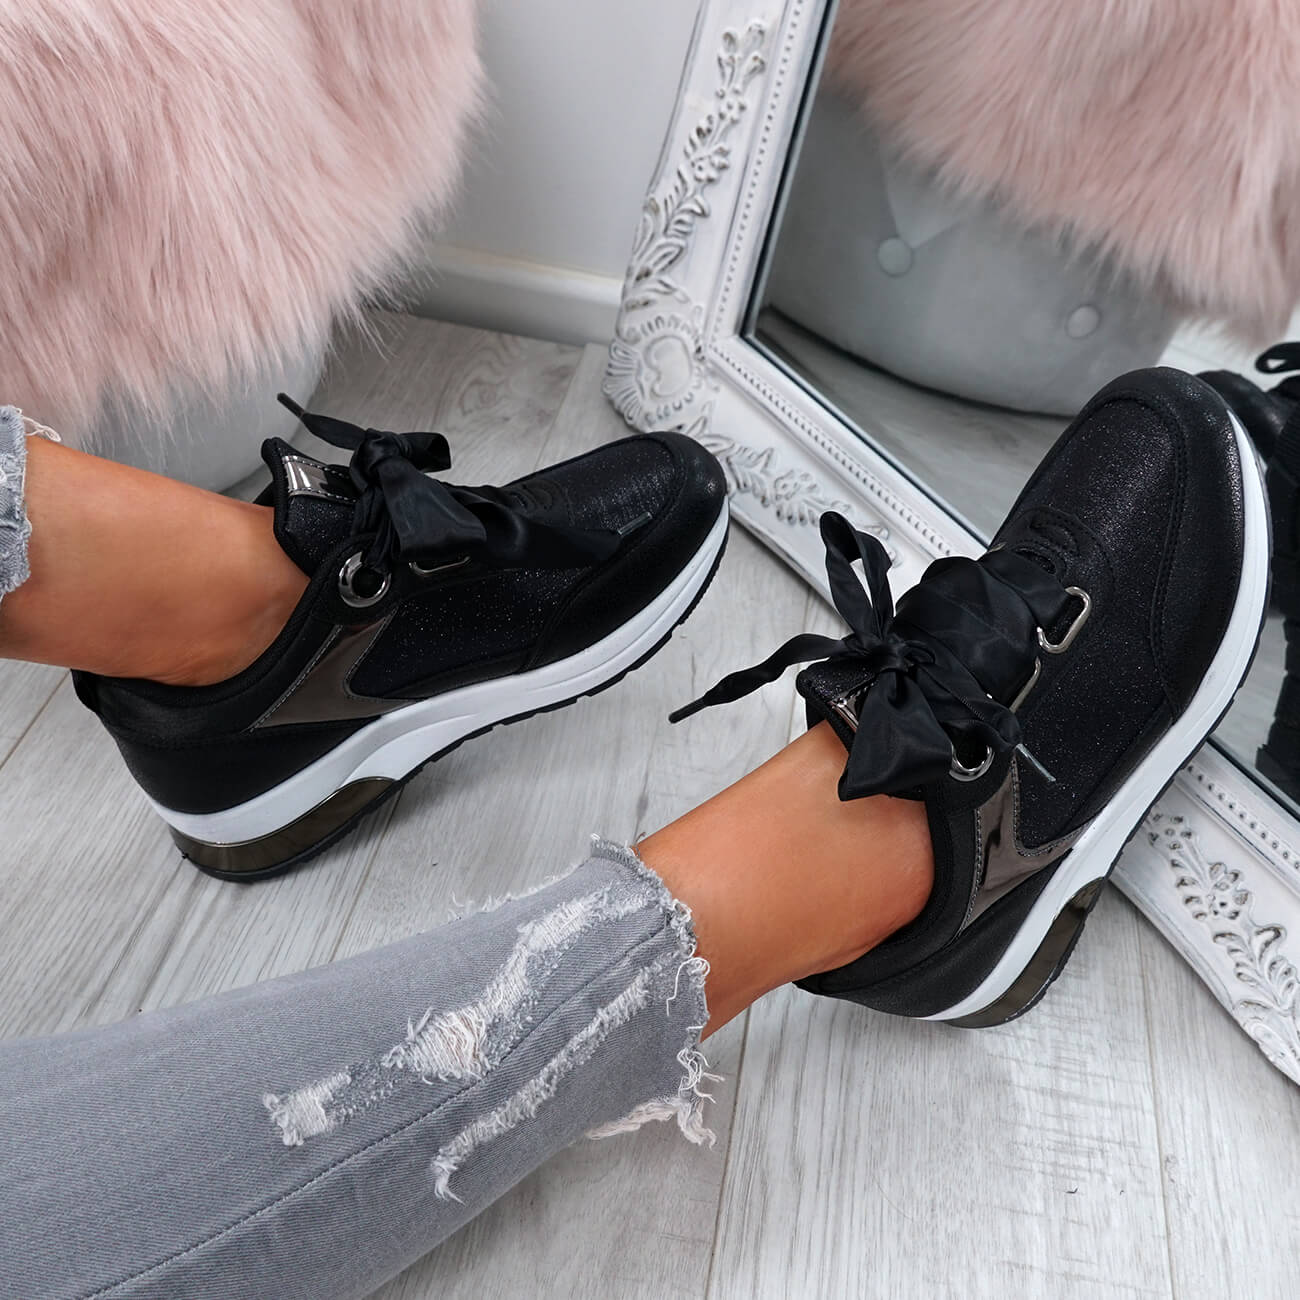 WOMENS-LADIES-RIBBON-TRAINERS-GLITTER-SPARKLE-SNEAKERS-RUNNING-FASHION-SHOES thumbnail 10